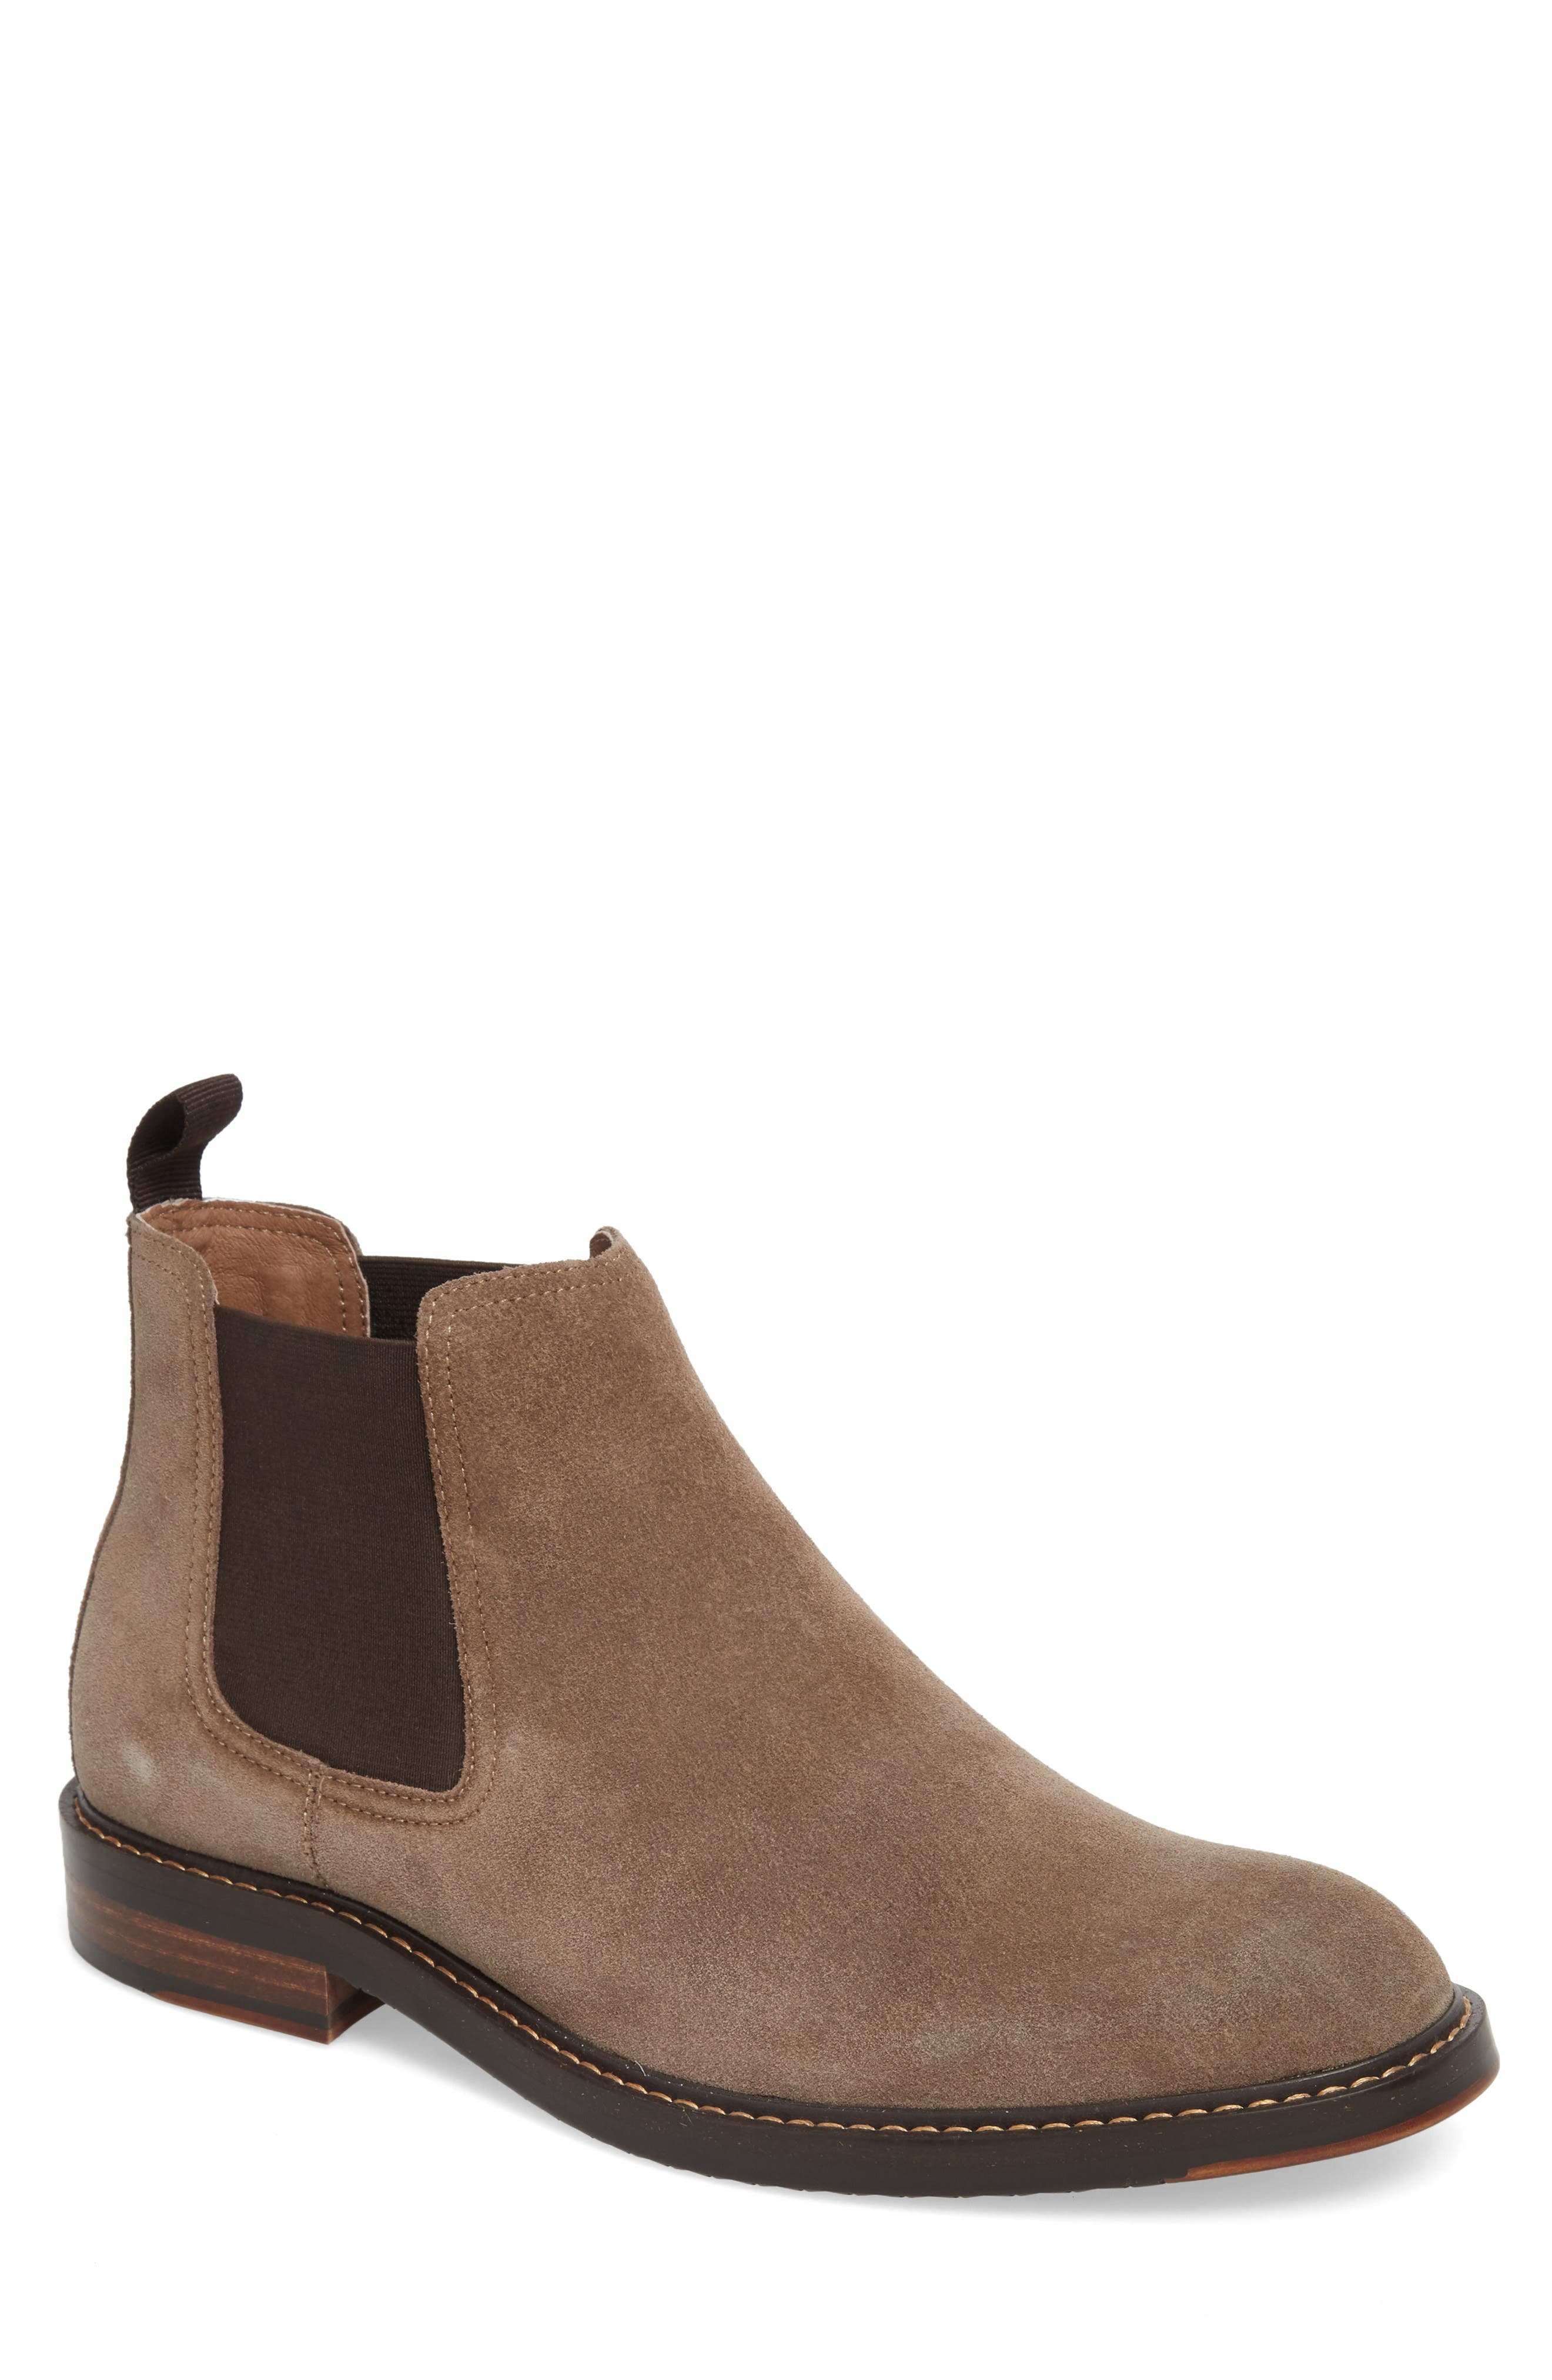 Brooks Chelsea Boot,                             Main thumbnail 1, color,                             TAUPE SUEDE